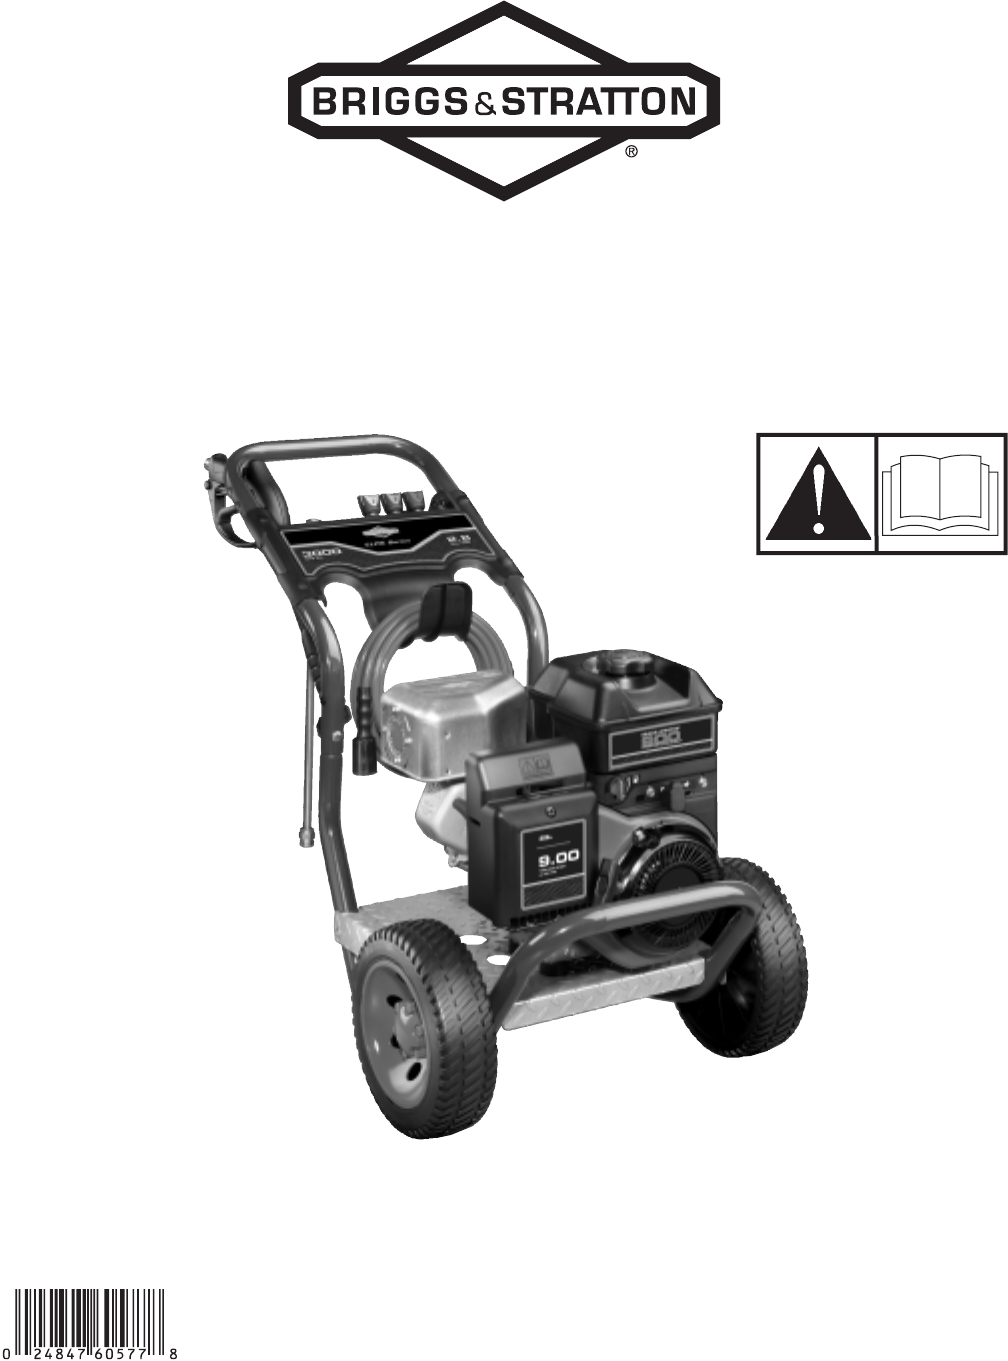 Briggs & Stratton Pressure Washer 020274-0 User Guide